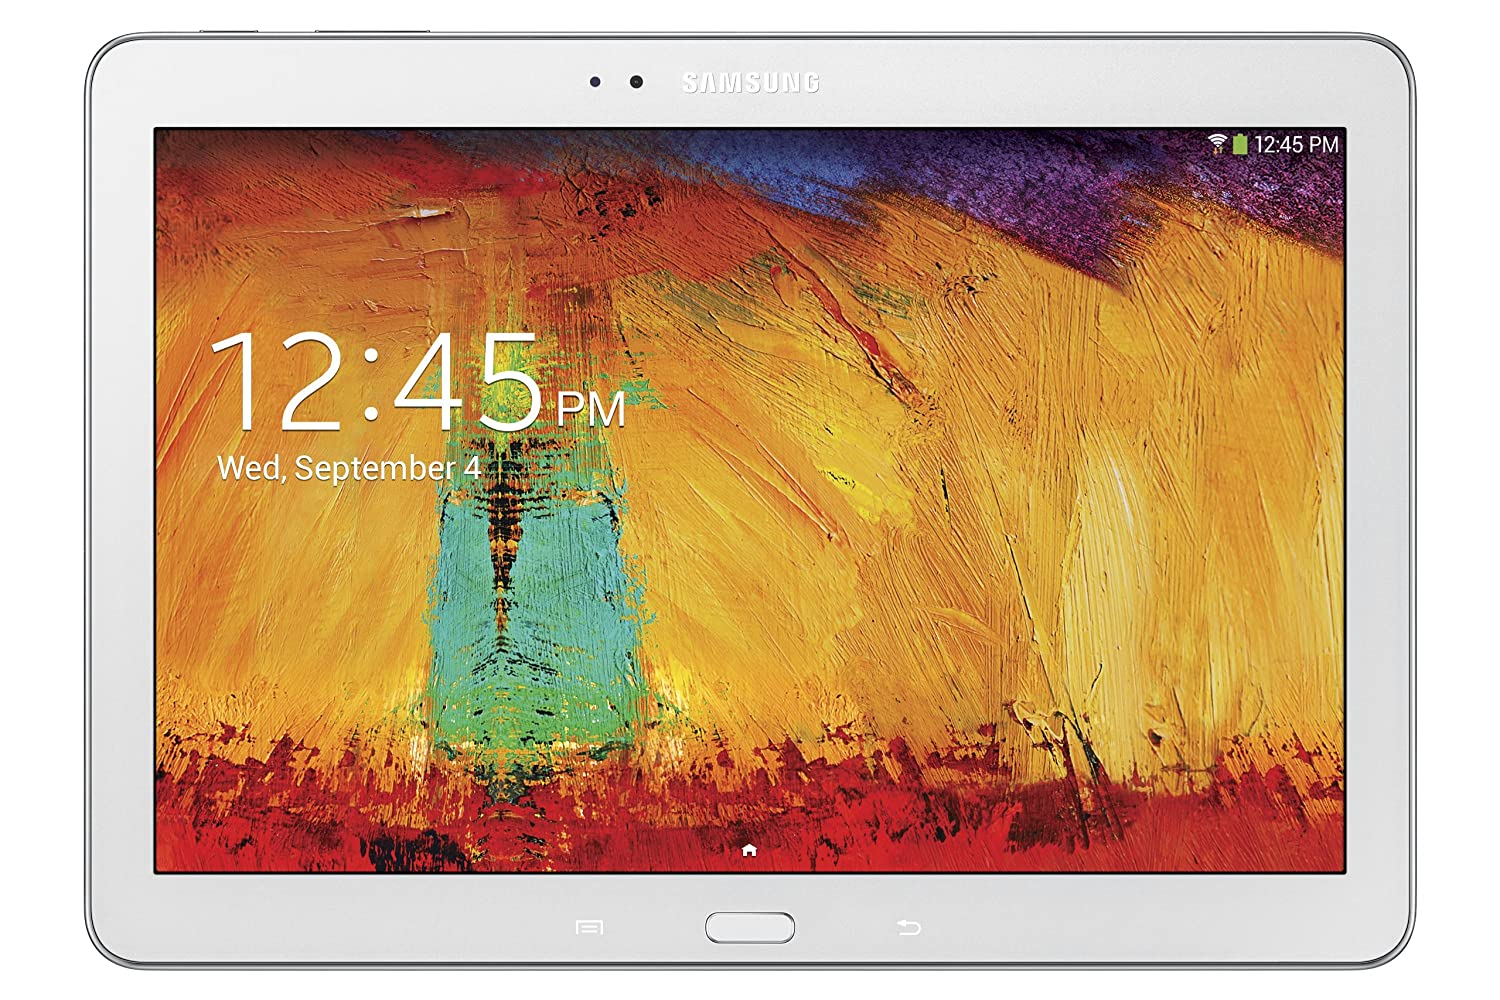 Samsung Galaxy Note 10.1 2014 Edition (16GB, White) +$50 GC